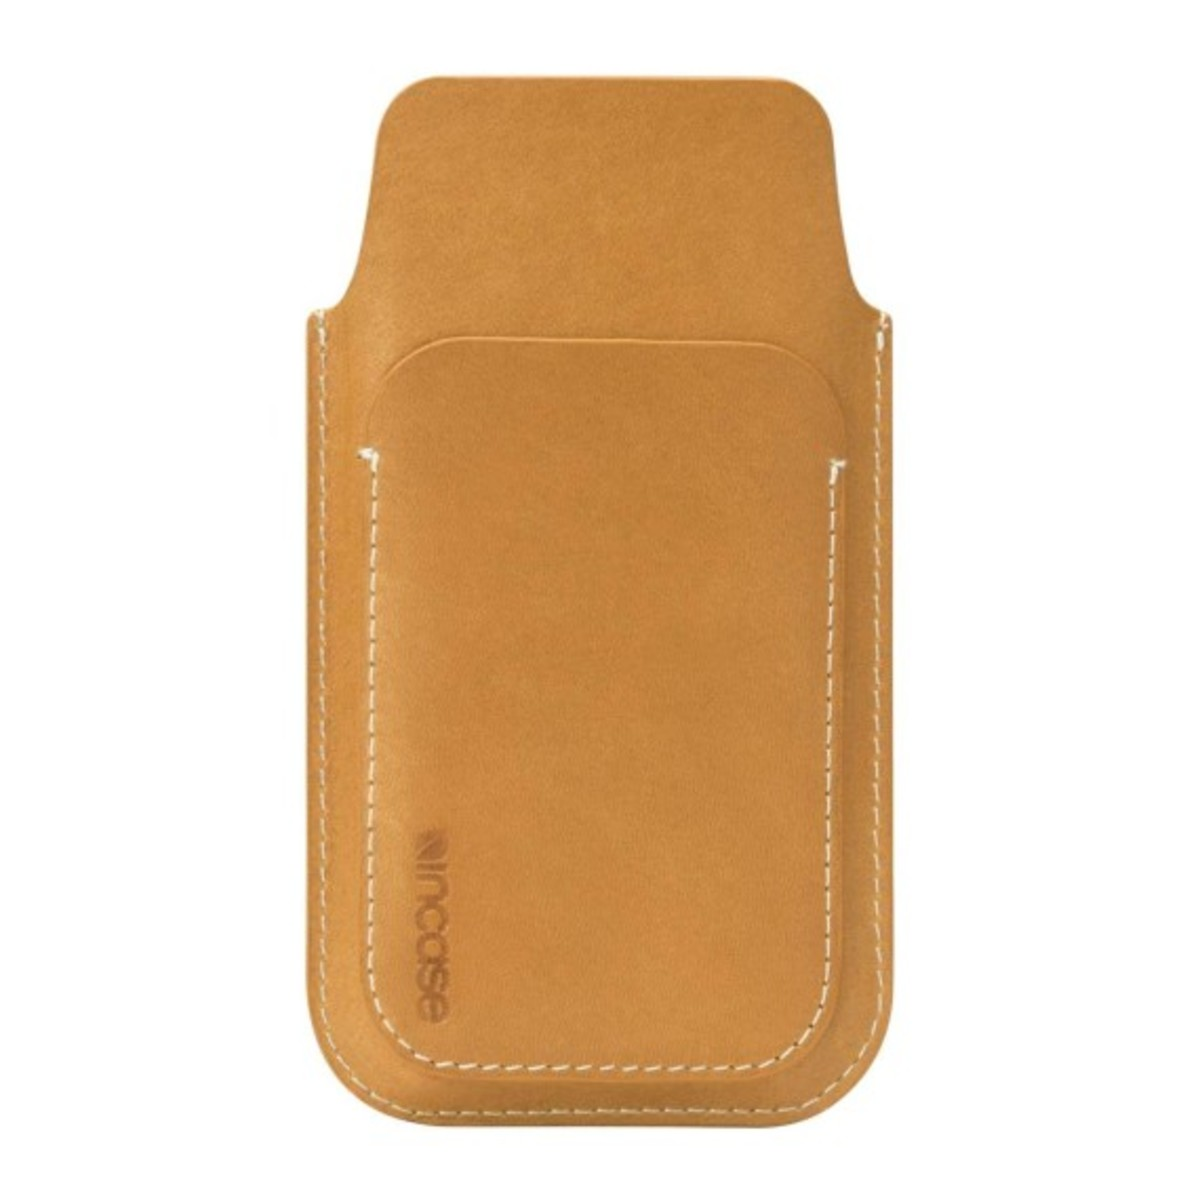 incase-iphone-5-leather-pouch-02